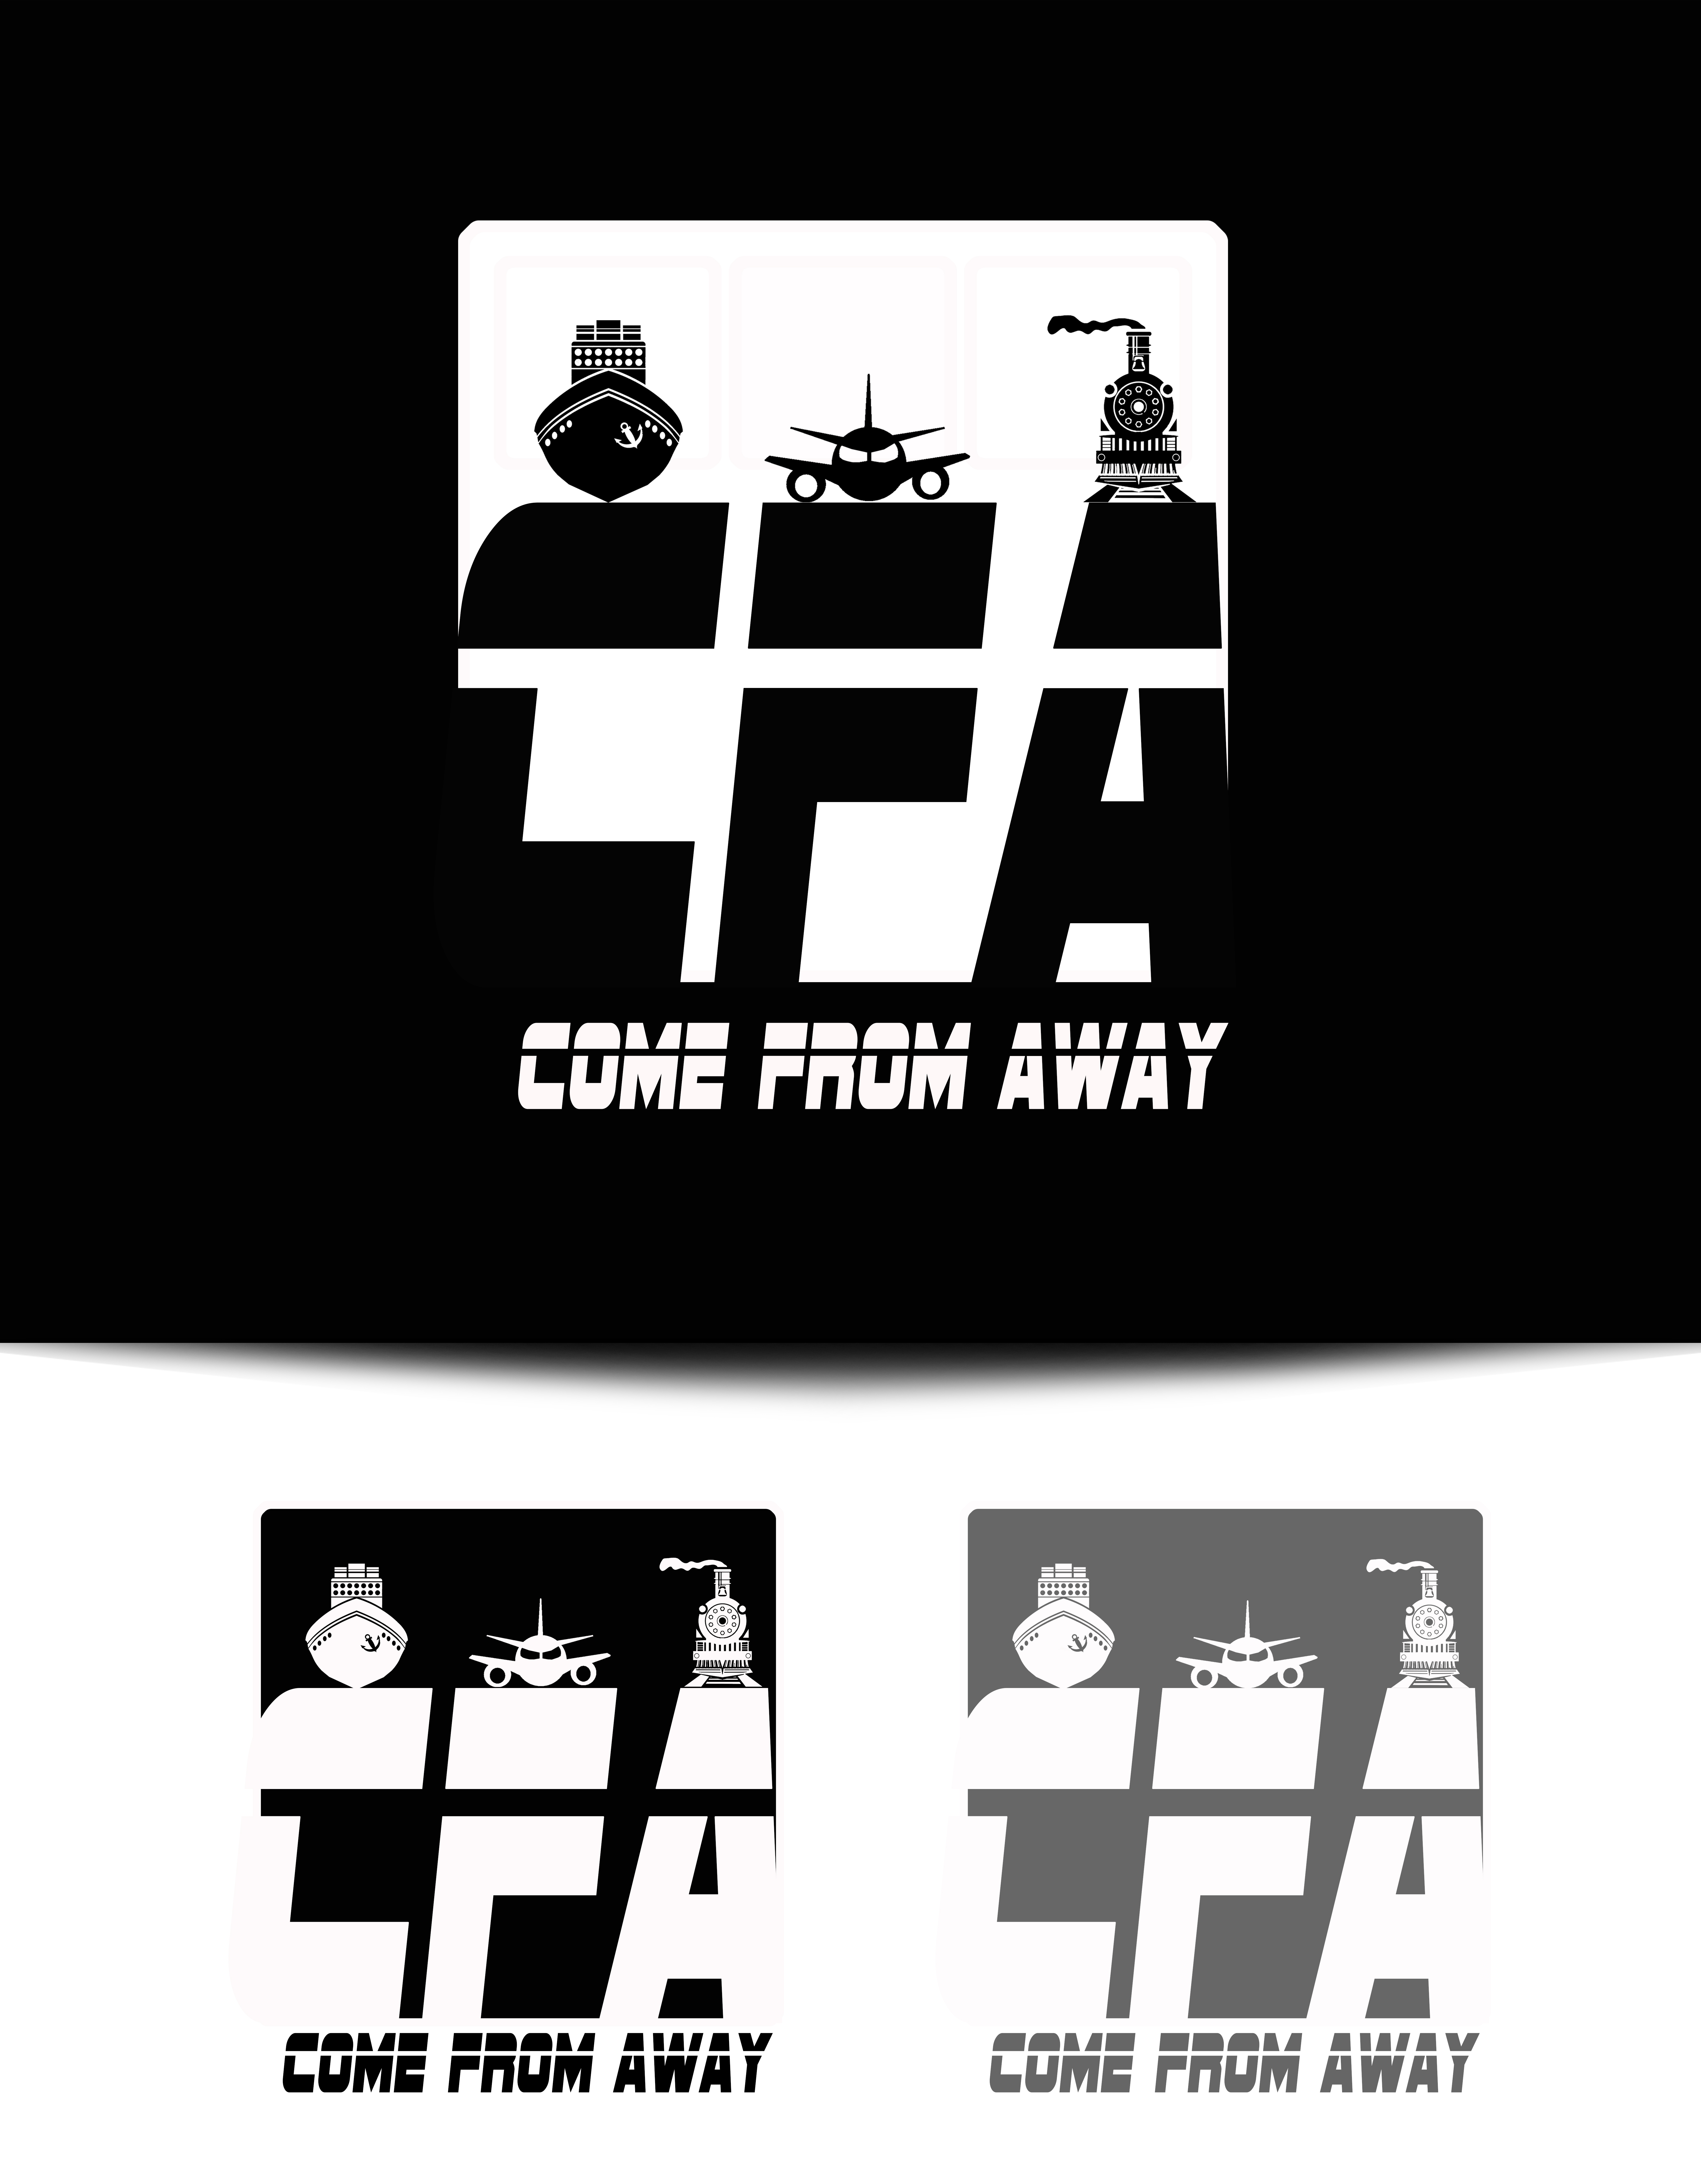 Logo Design by JSDESIGNGROUP - Entry No. 97 in the Logo Design Contest Artistic Logo Design for Come From Away Clothing Company.